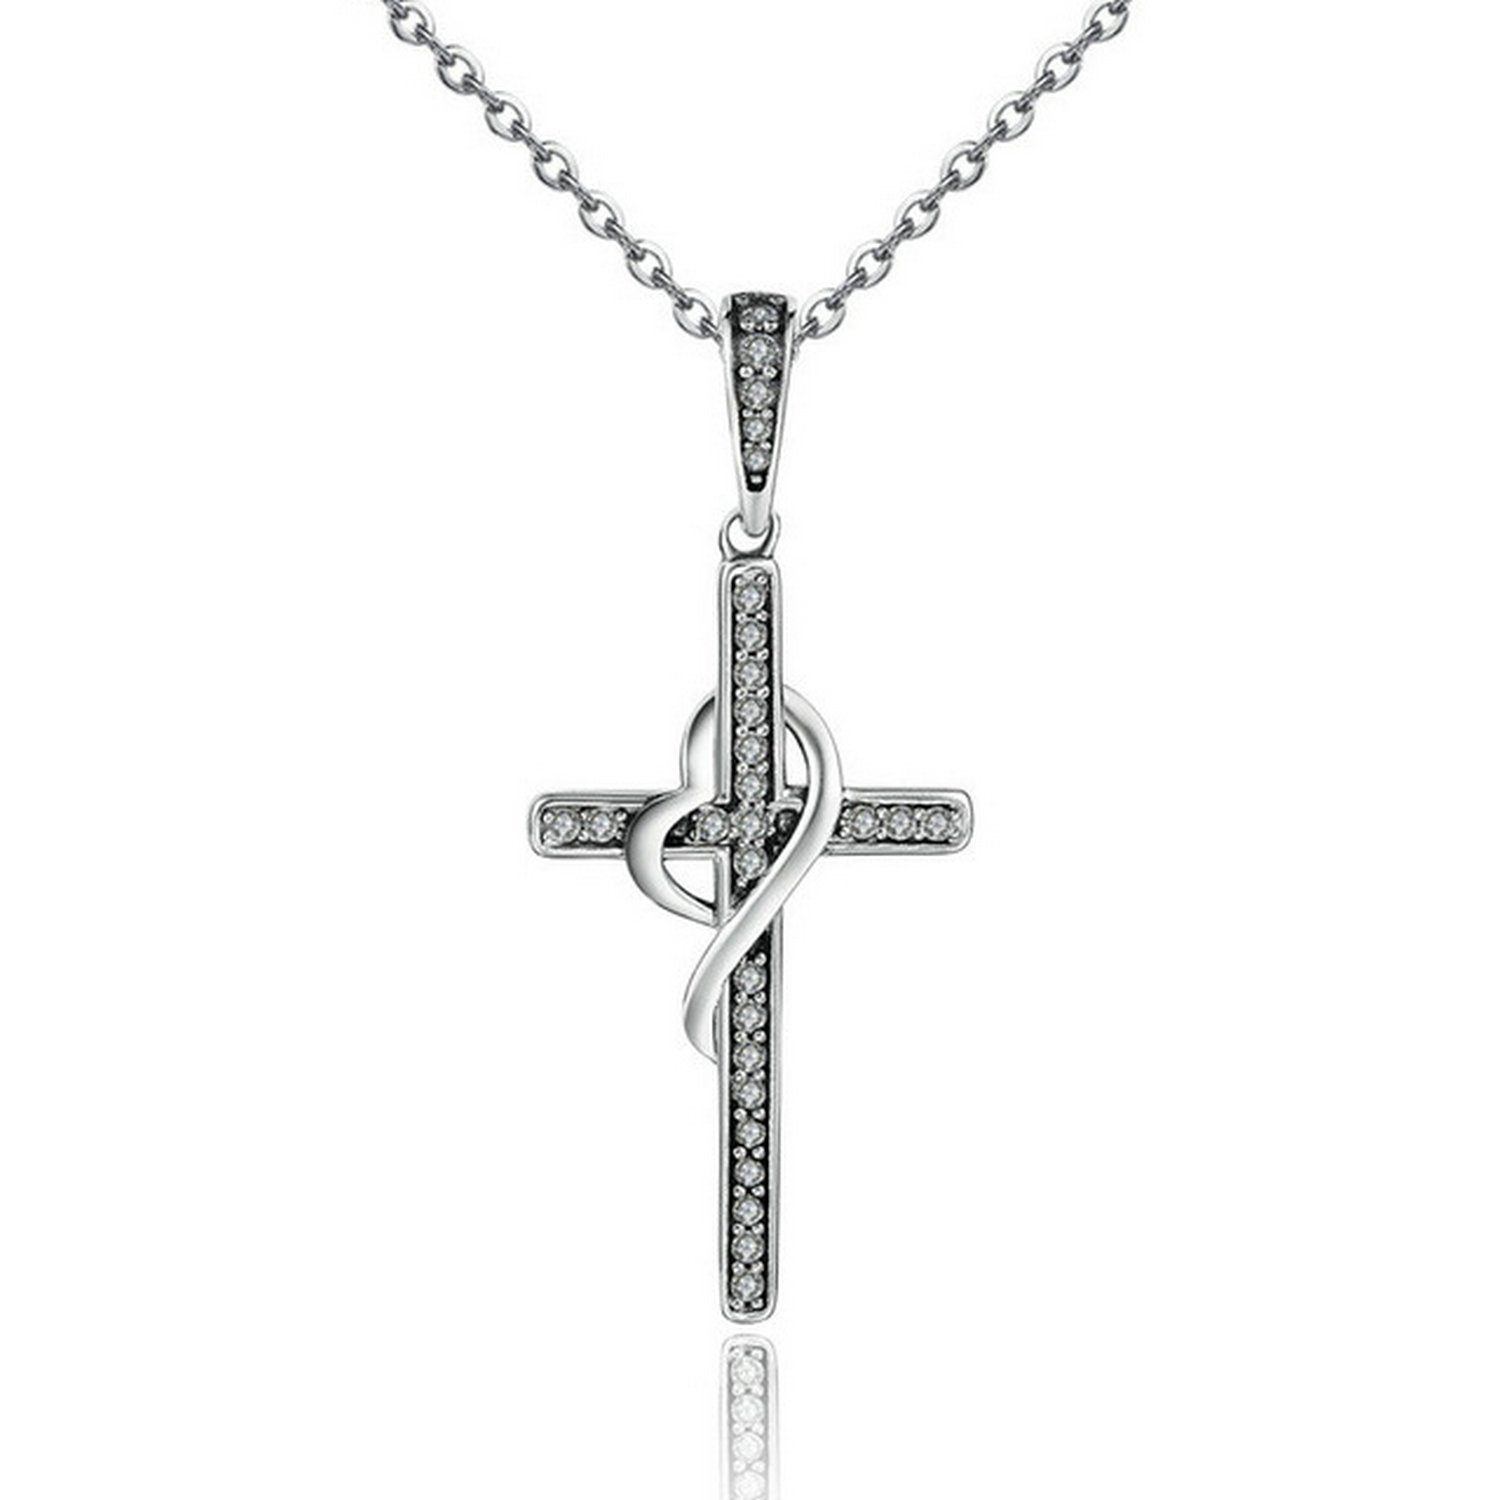 CS-DB Jewelry Silver Cross Twisting with Heart Chain Charm Pendants Necklaces